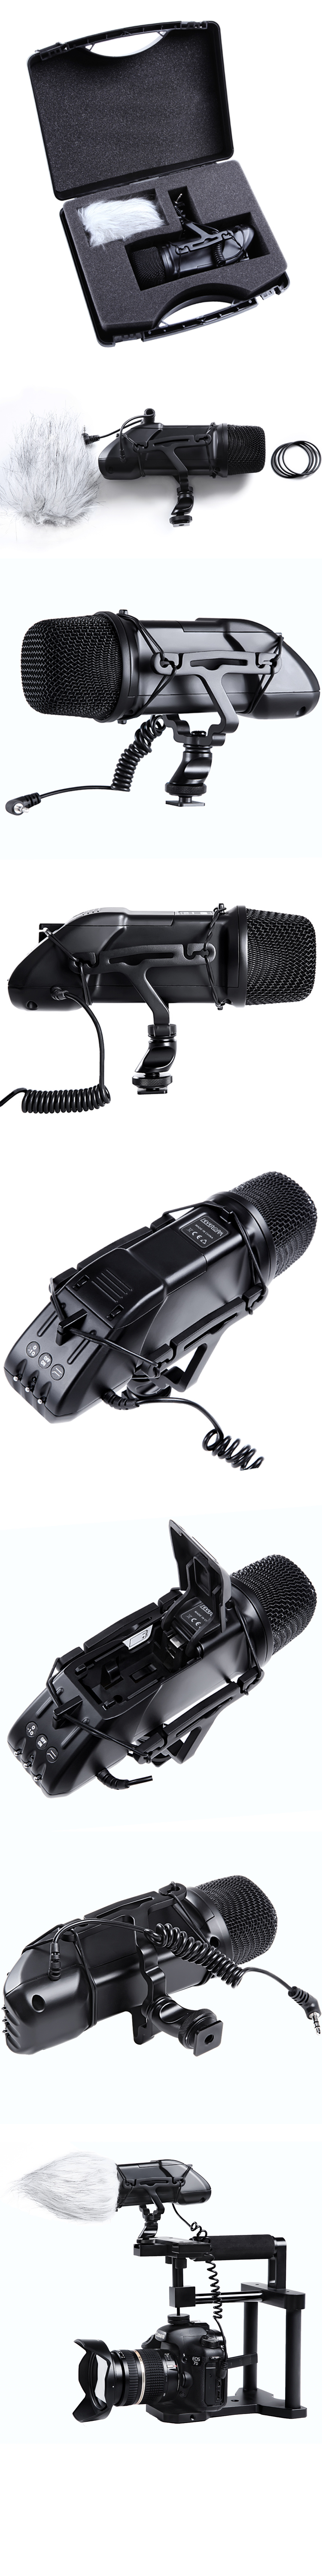 Stereo Video Microphone SK-SVM30